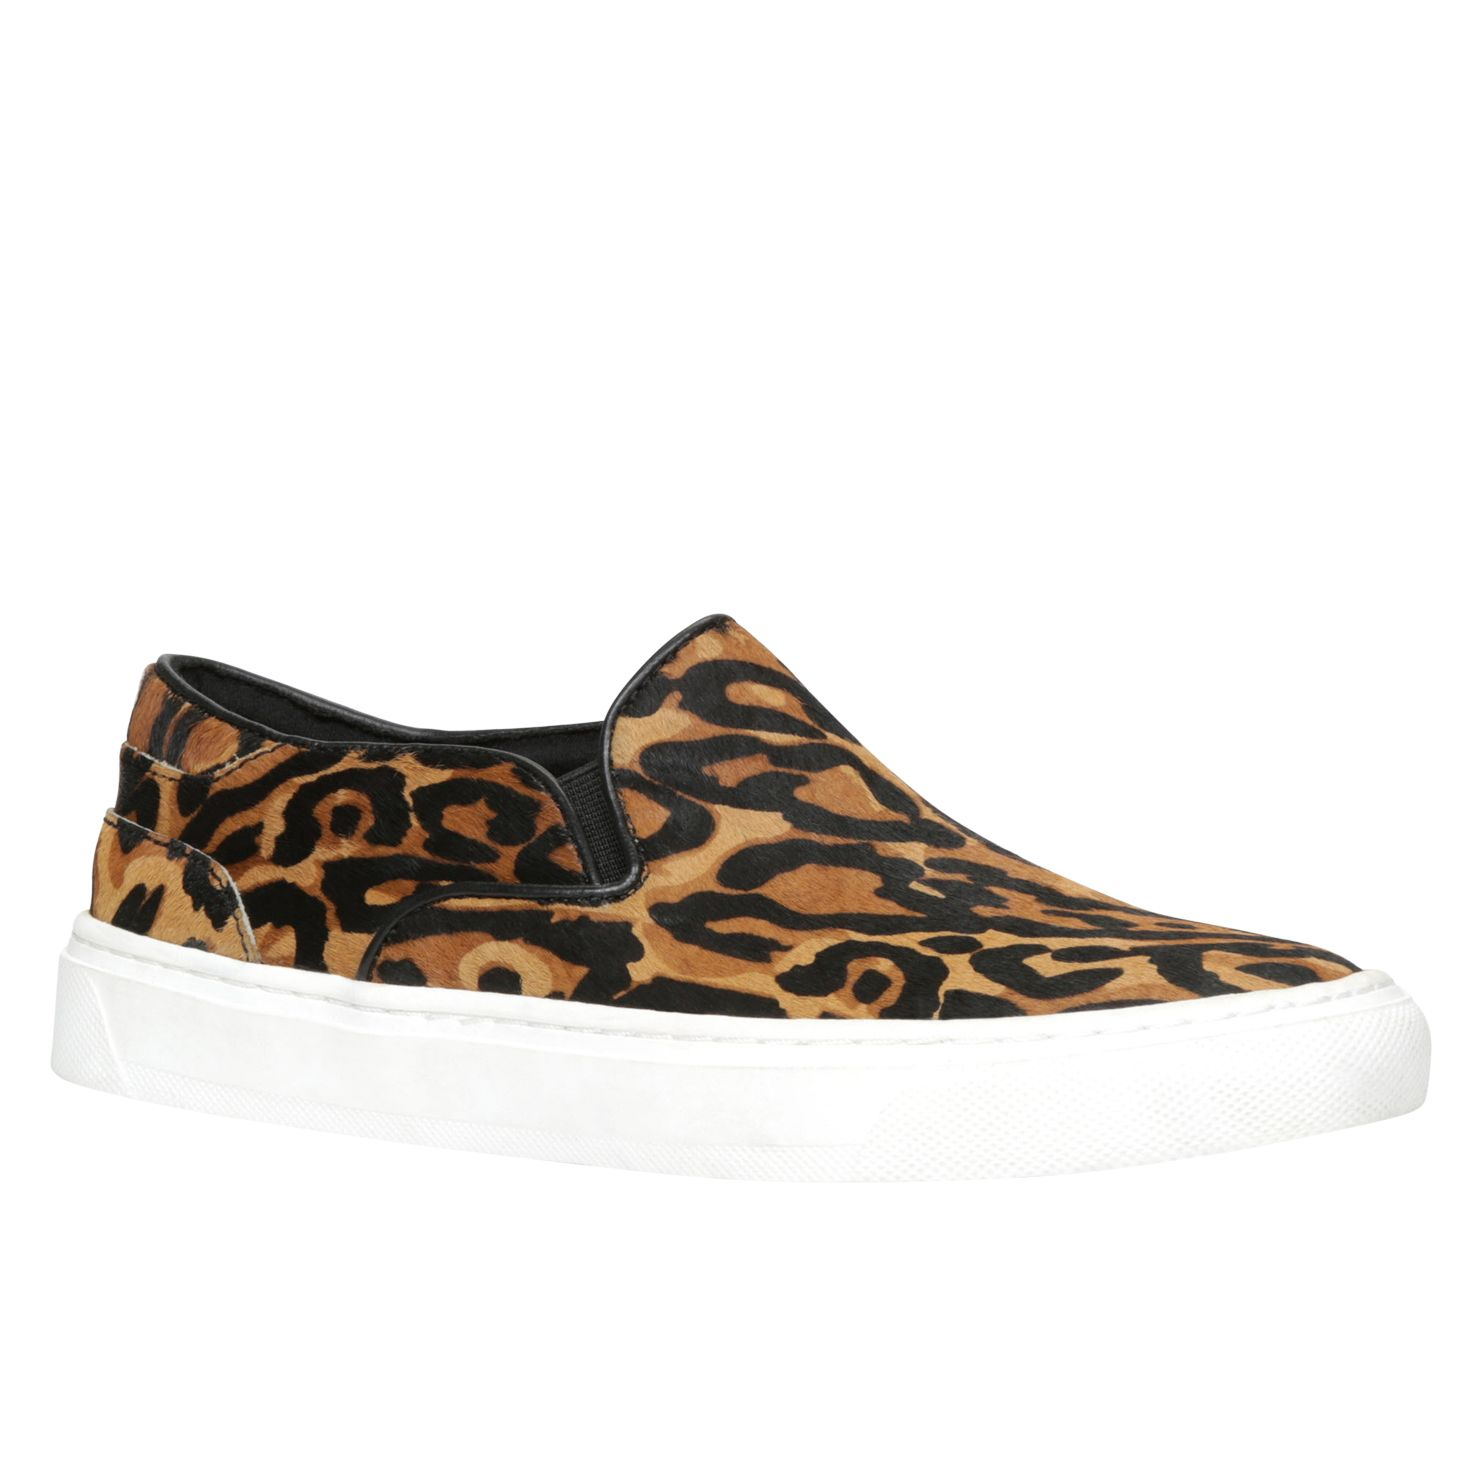 Jerayng slip on trainers